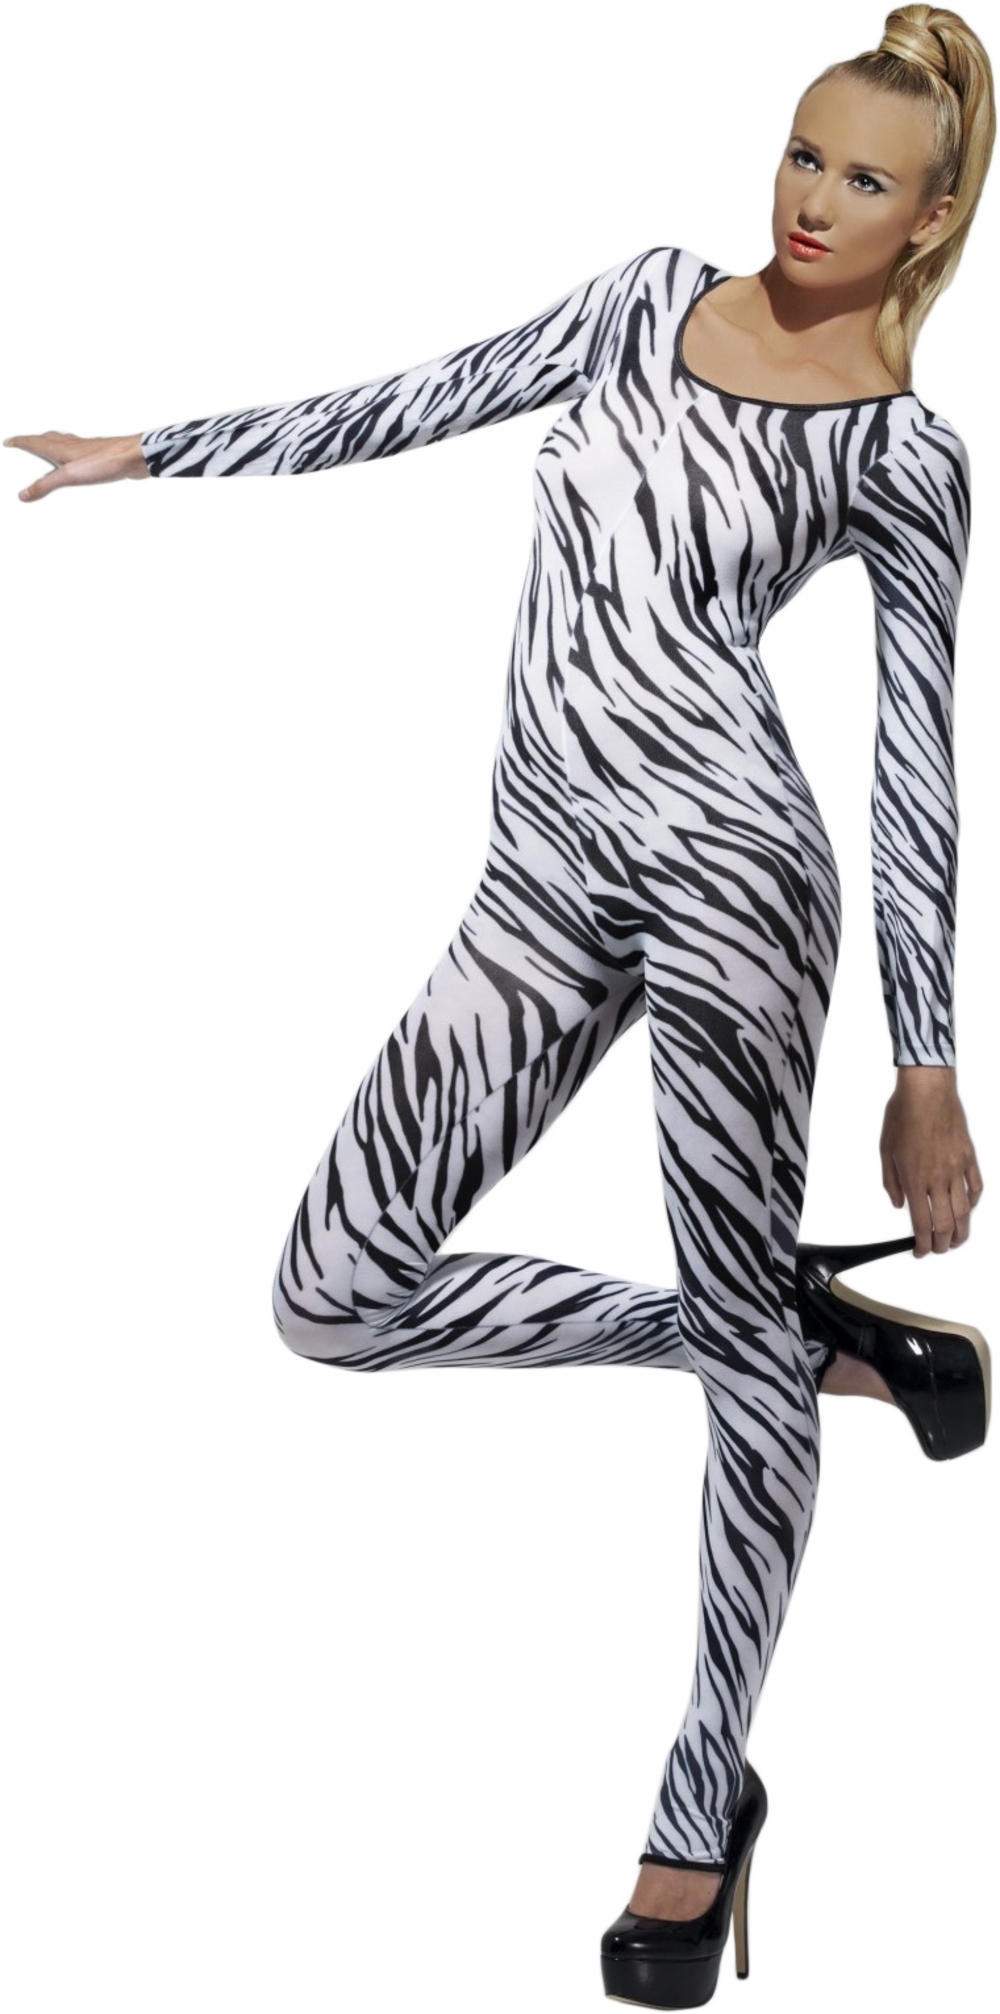 Zebra Bodysuit Ladies Costume